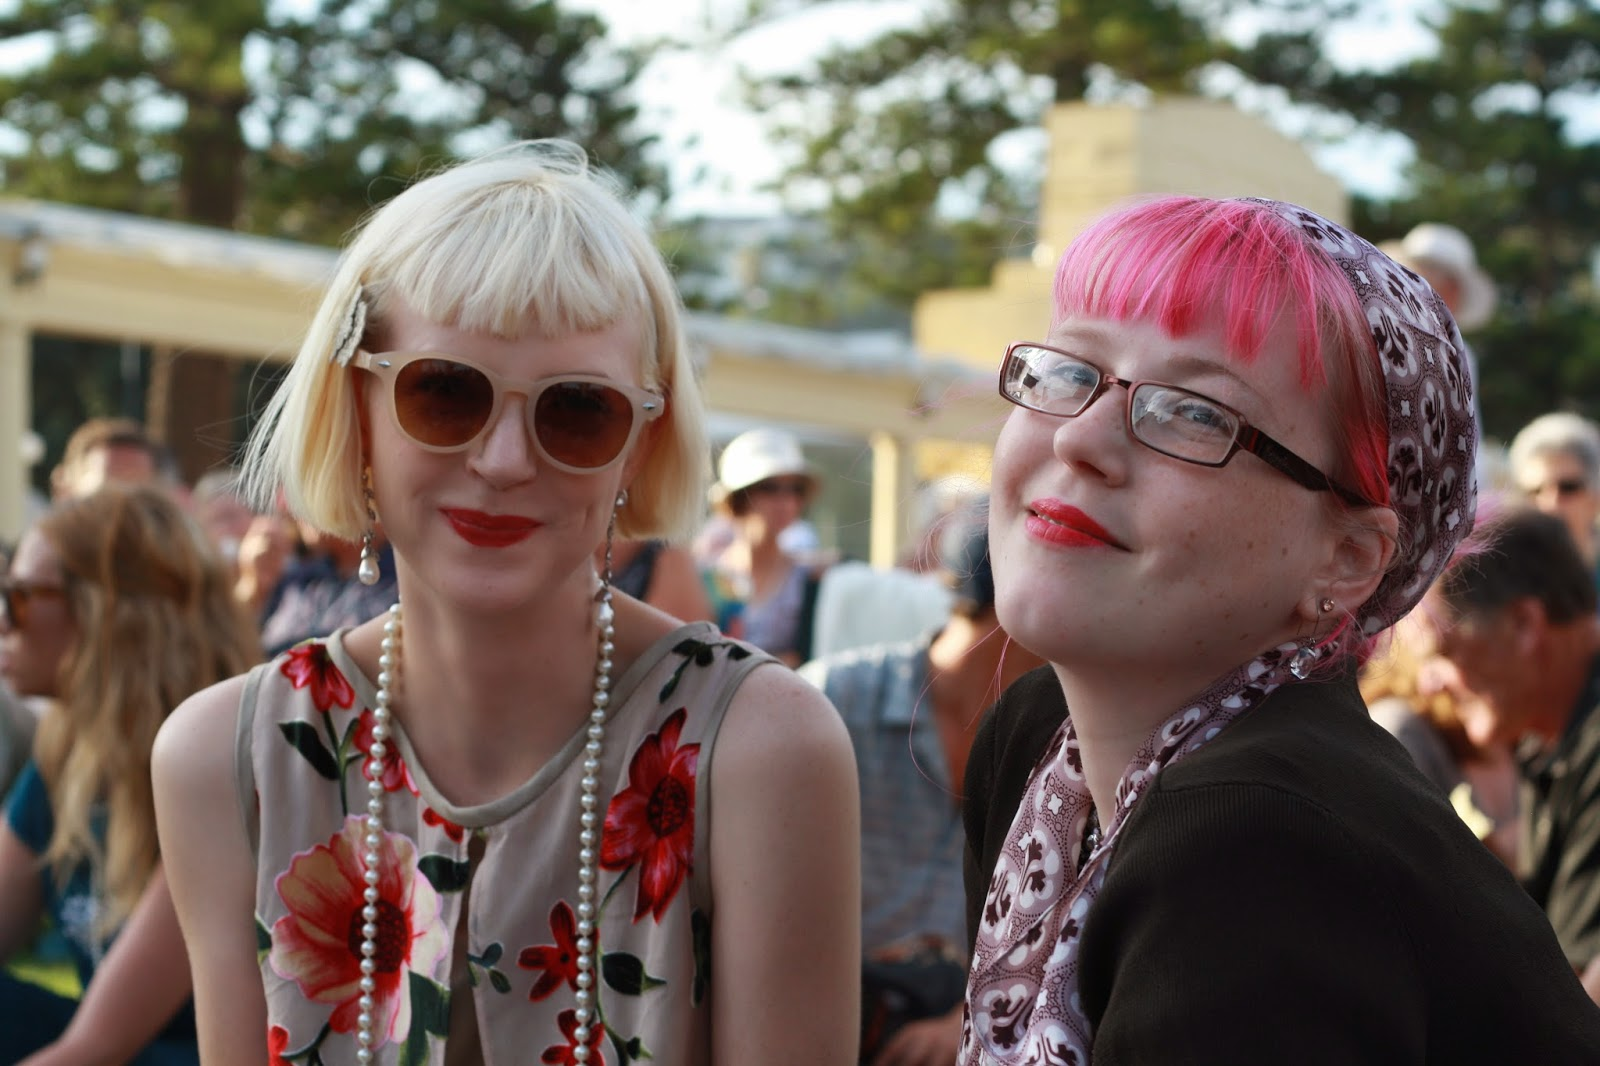 A girl with a blonde, art deco bob and pearls, smiling. Another girl with pink hair and a smile.